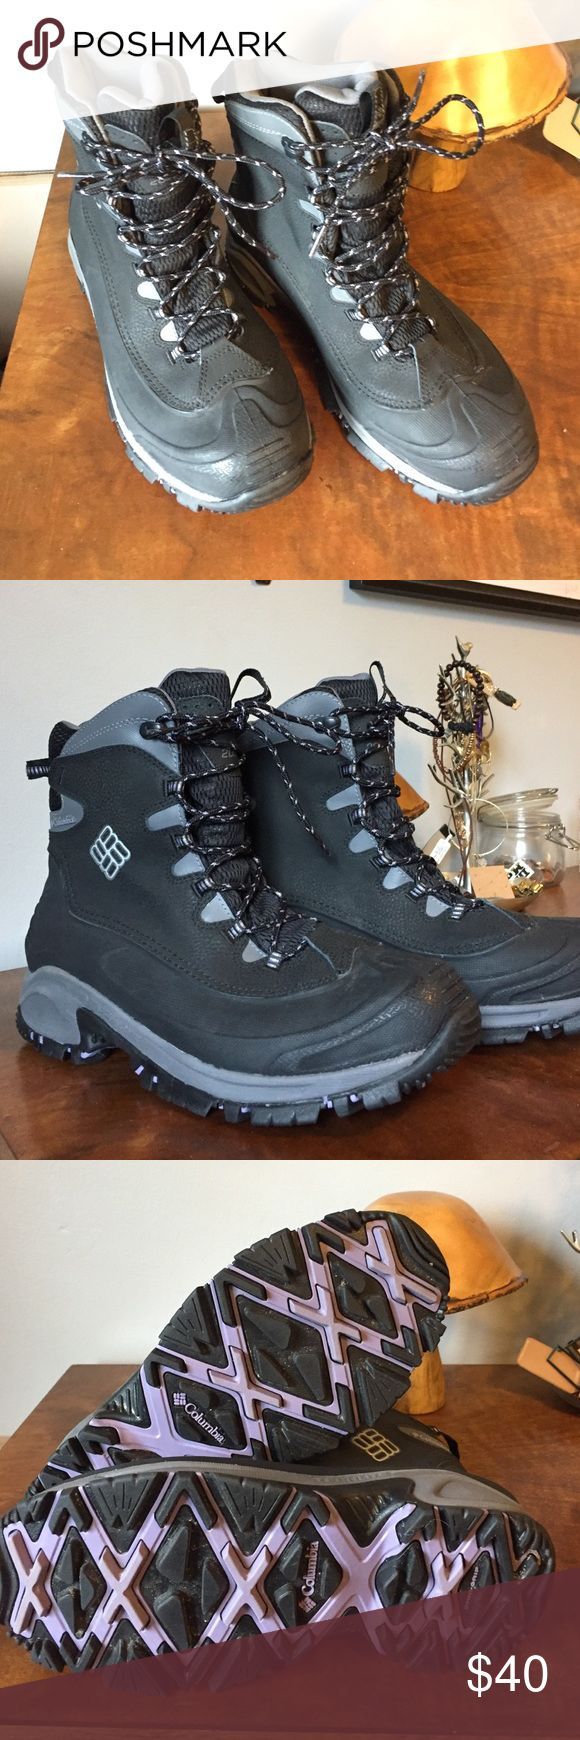 Columbia sportswear women's snow boots Heavy duty snow boots from Columbia. Only wore one time, you can see by the soles they are in excellent condition! Ladies size 9.5 Columbia Shoes Winter & Rain Boots